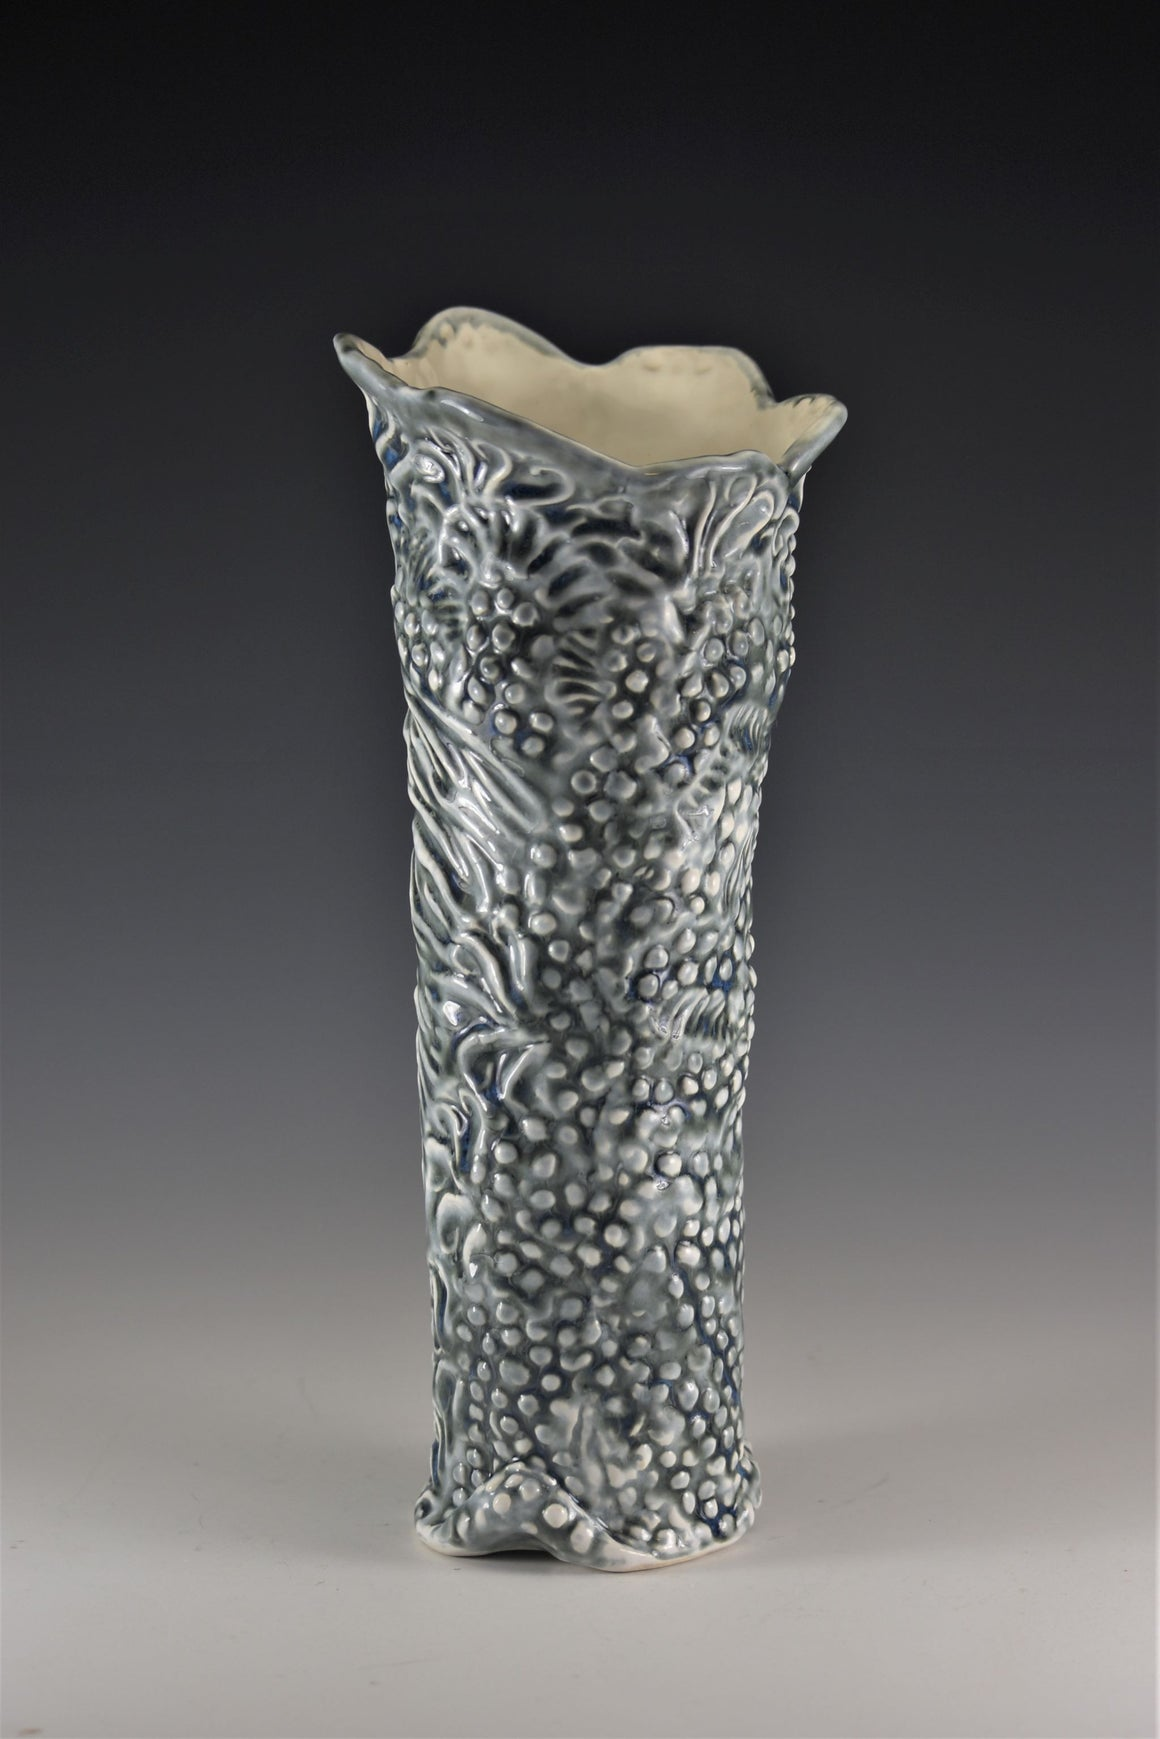 Textured Vase in Blue, Gray and White